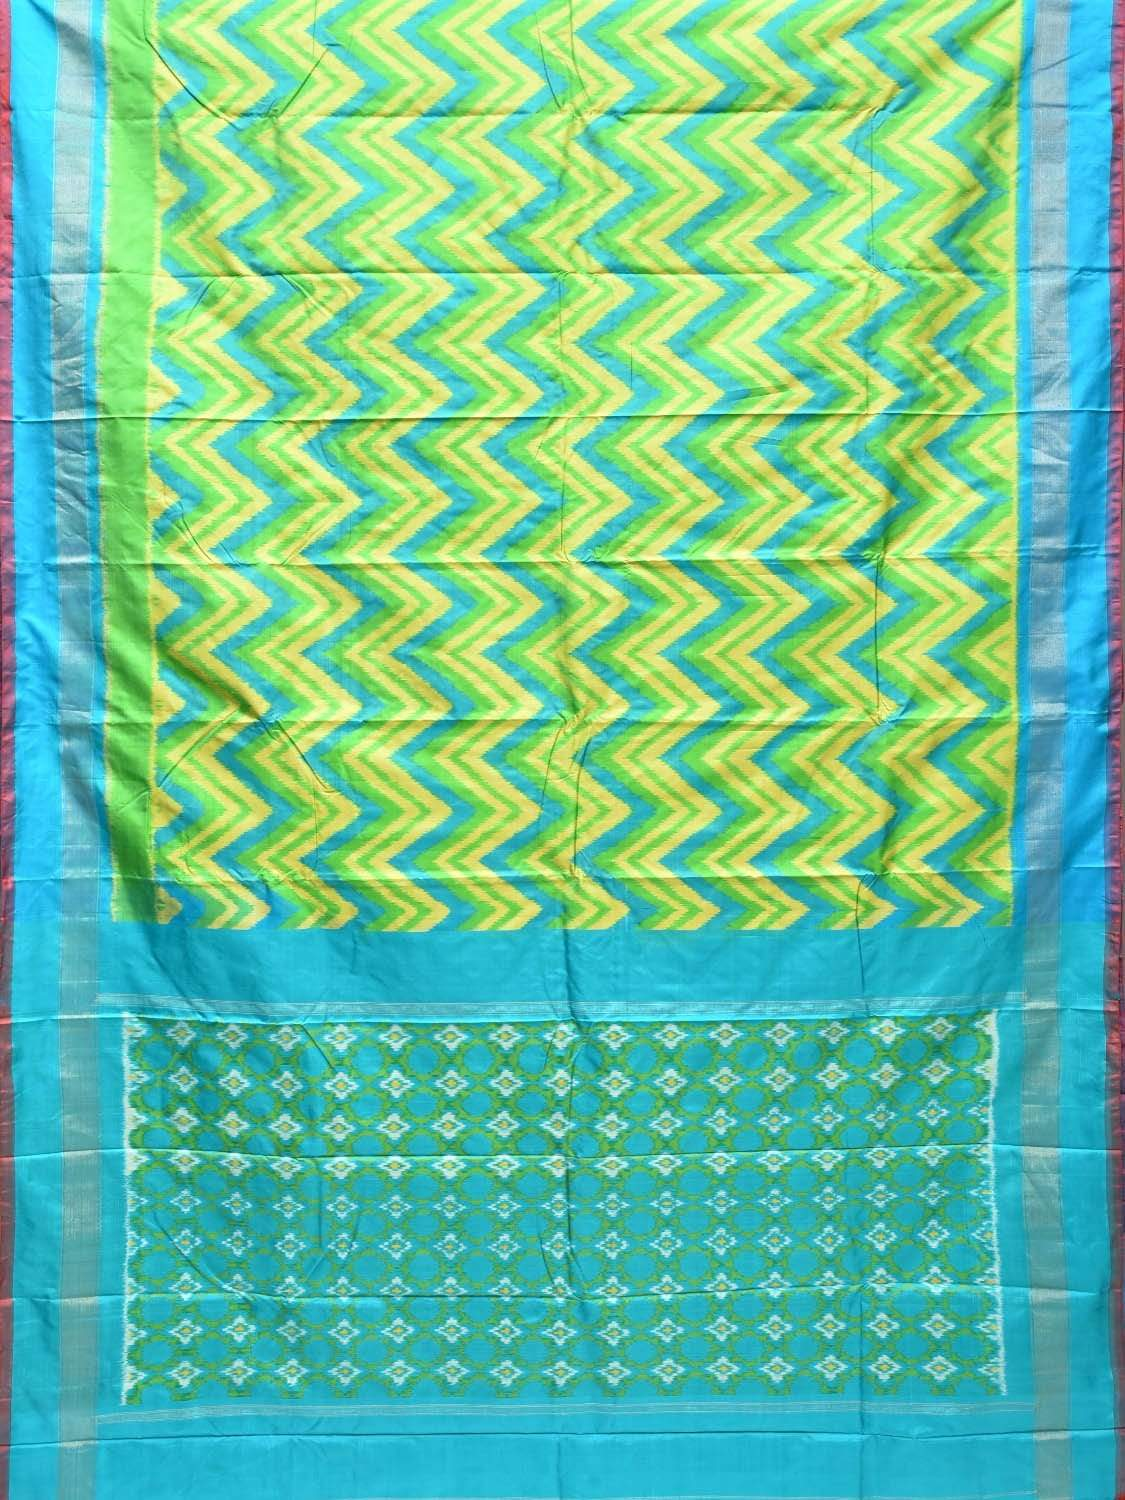 Blue and Green Pochampally Single Ikat Silk Handloom Saree with All Over Zig-Zag Design i0552